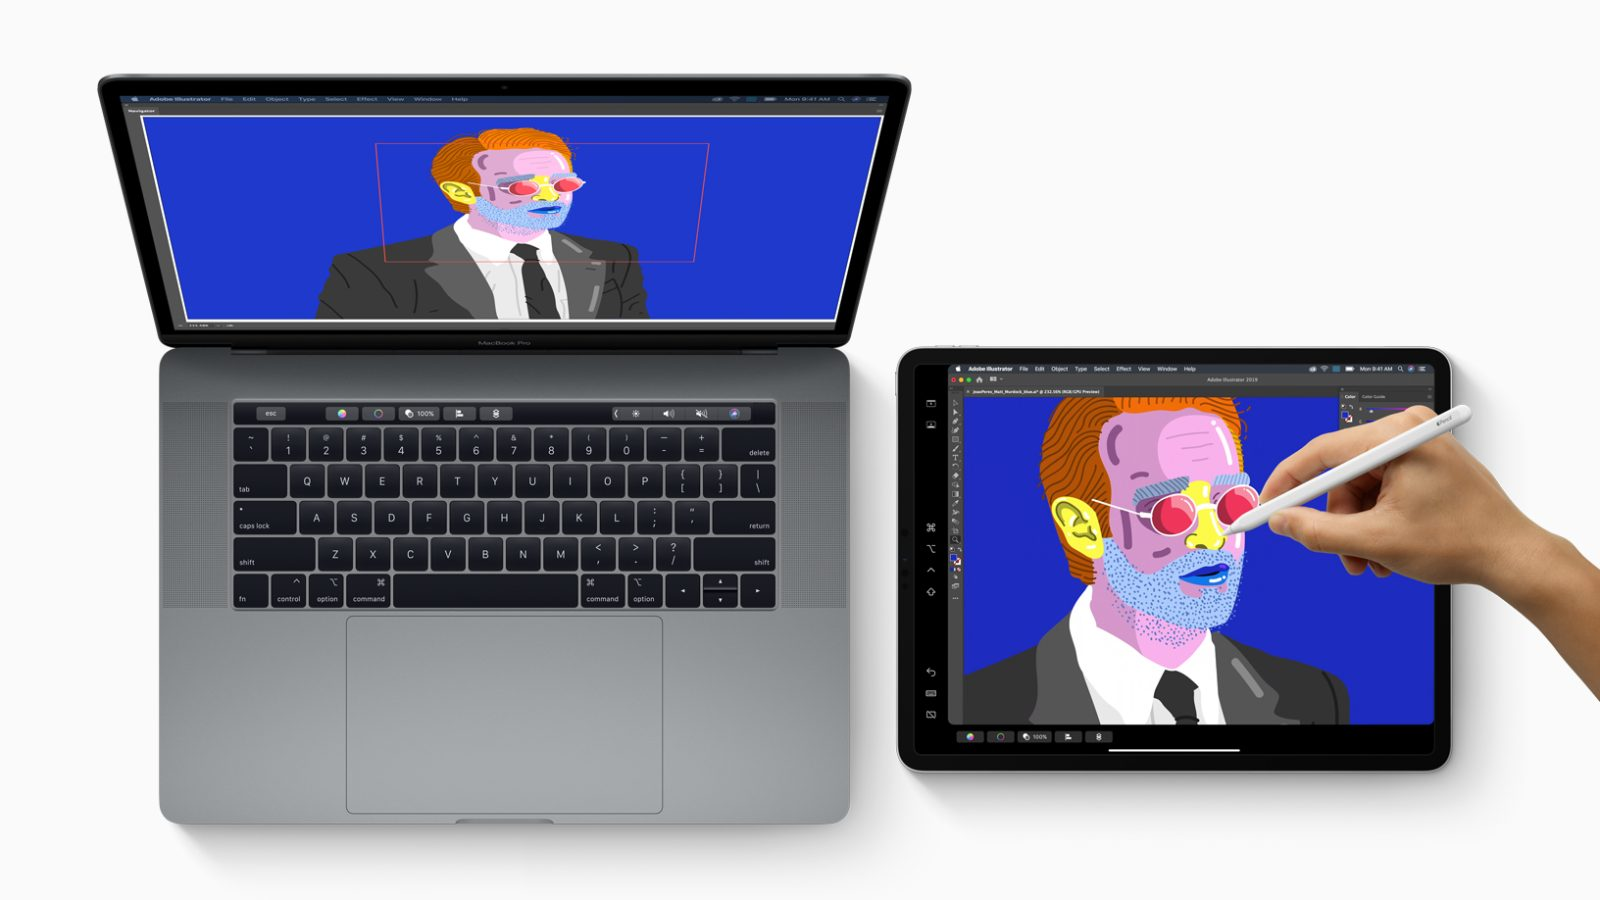 PSA: Sidecar in macOS Catalina is not compatible with some older Macs and iPads